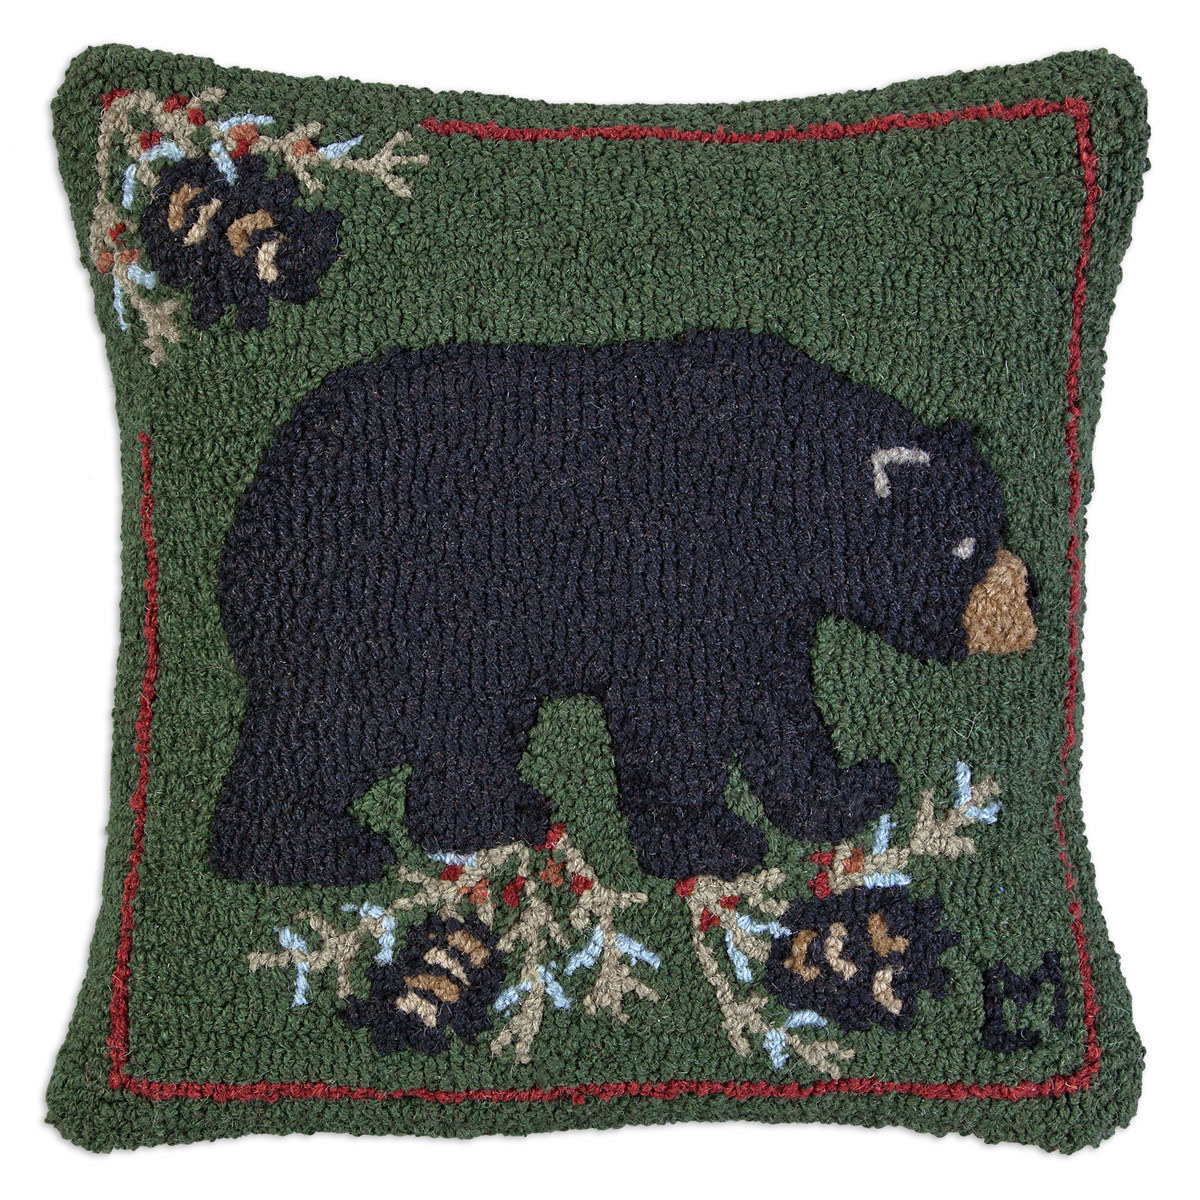 "Black Bear 18"" Wool Hooked Pillow"